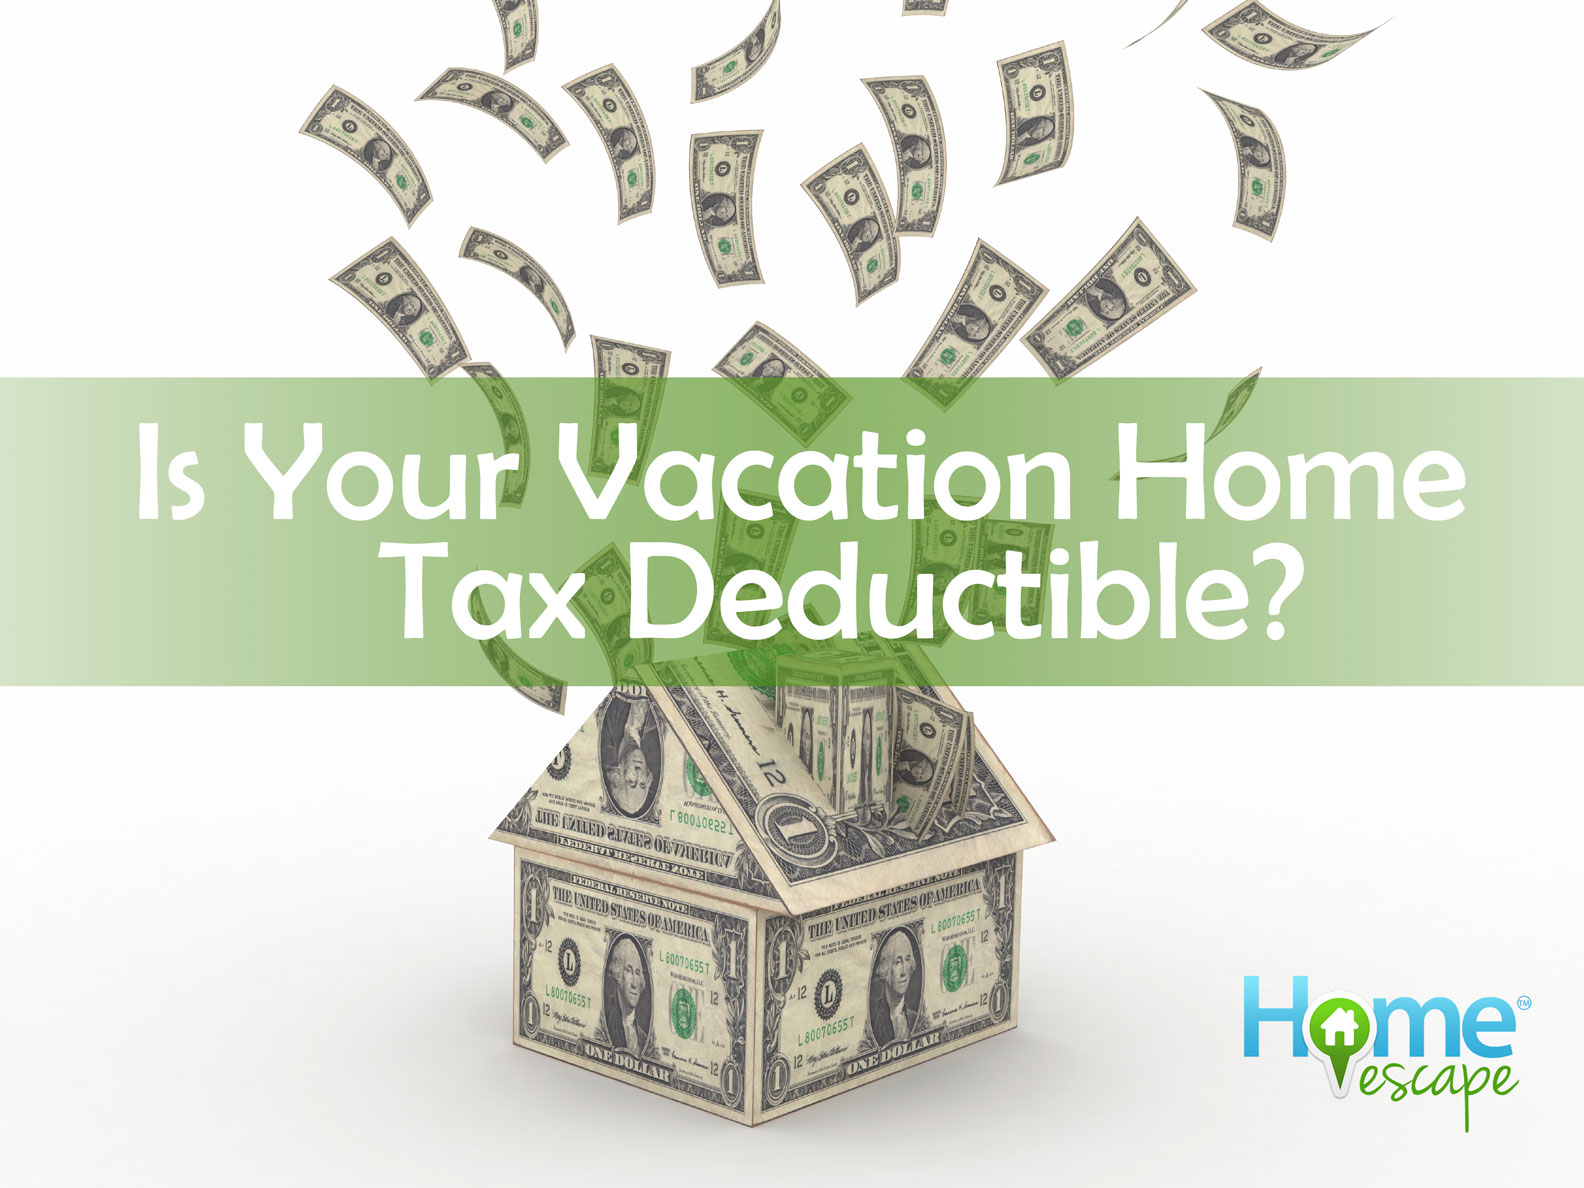 Is Your Vacation Home Tax Deductible?